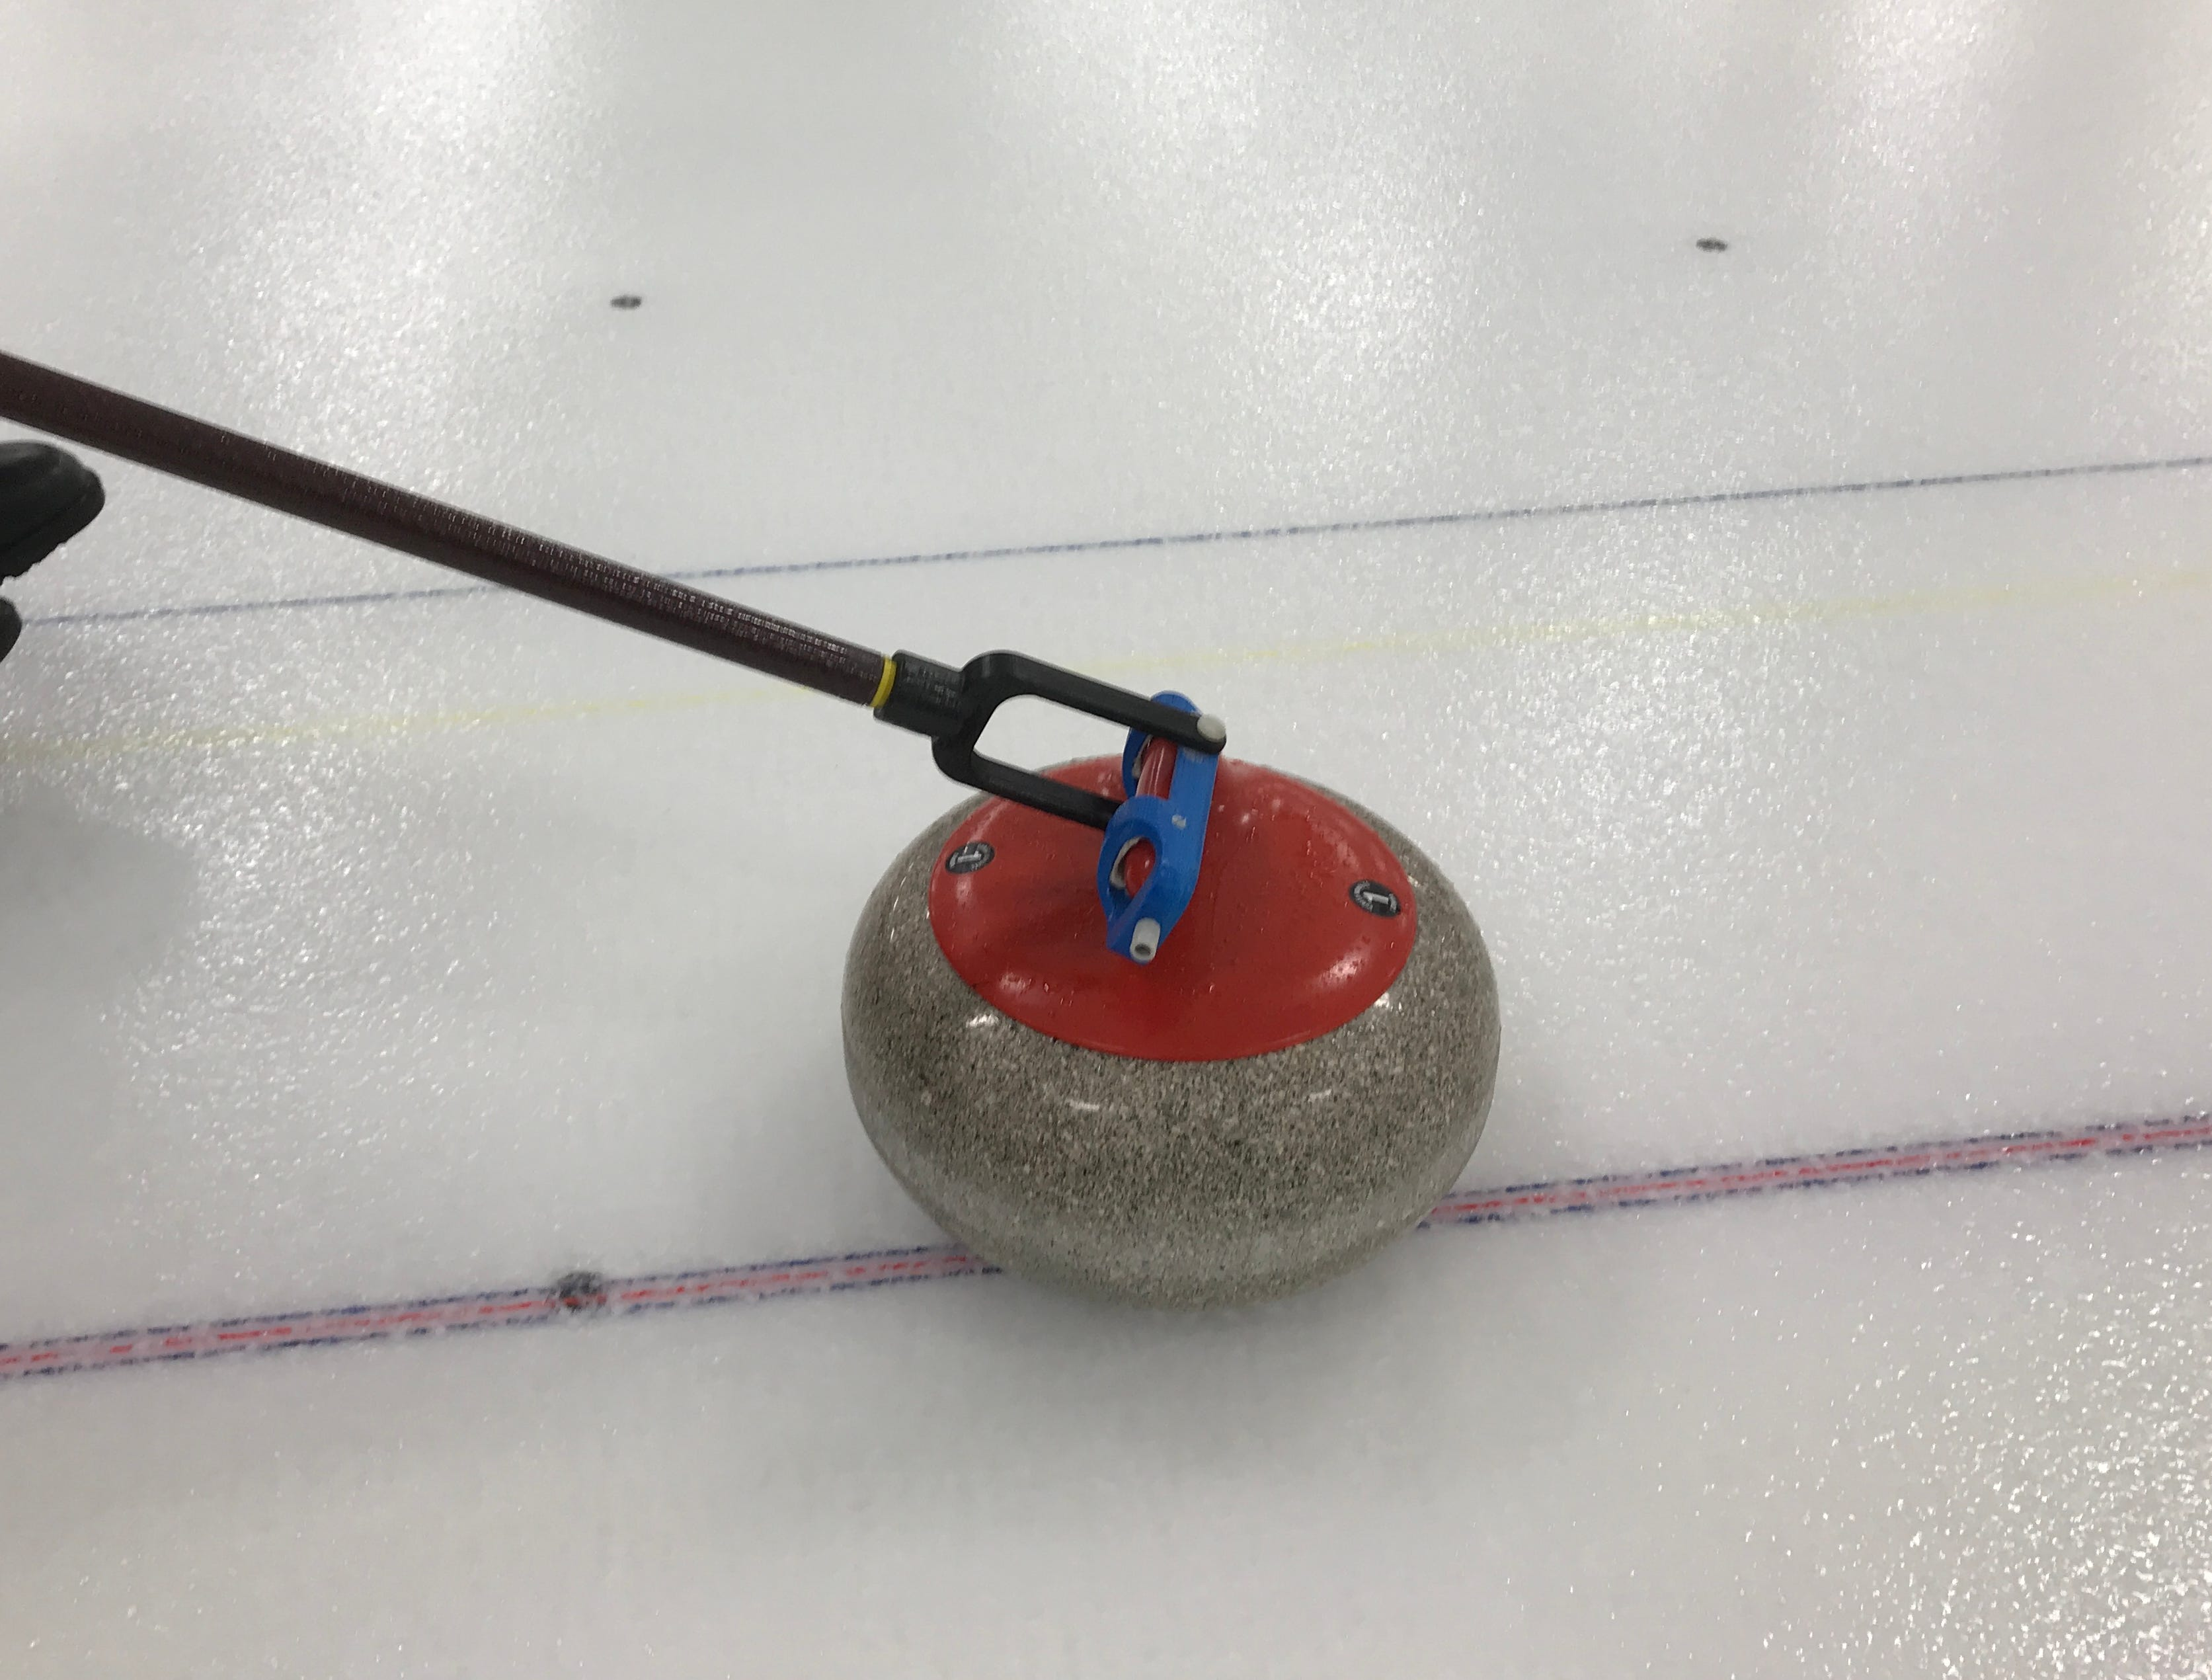 Thums uses a light pole to throw the rocks. He can spin the rock with the specially-designed fitting on the end. Wheelchair athletes don't sweep in their curling matches, as other athletes do. That means Thums' touch on the throws is especially important.